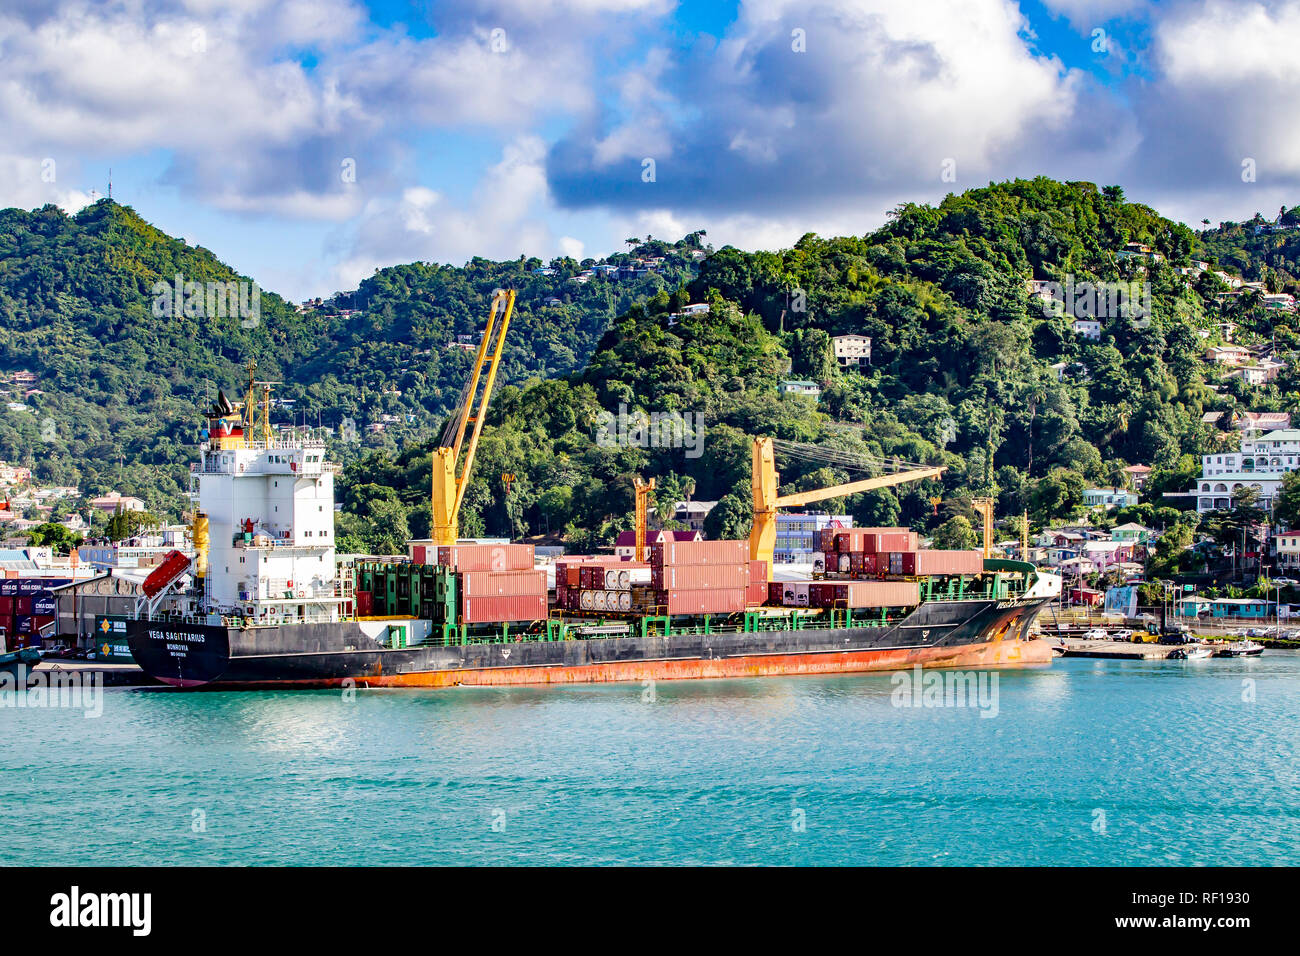 Castries  Saint Lucia one of the Windward Island in the Caribbean. - Stock Image